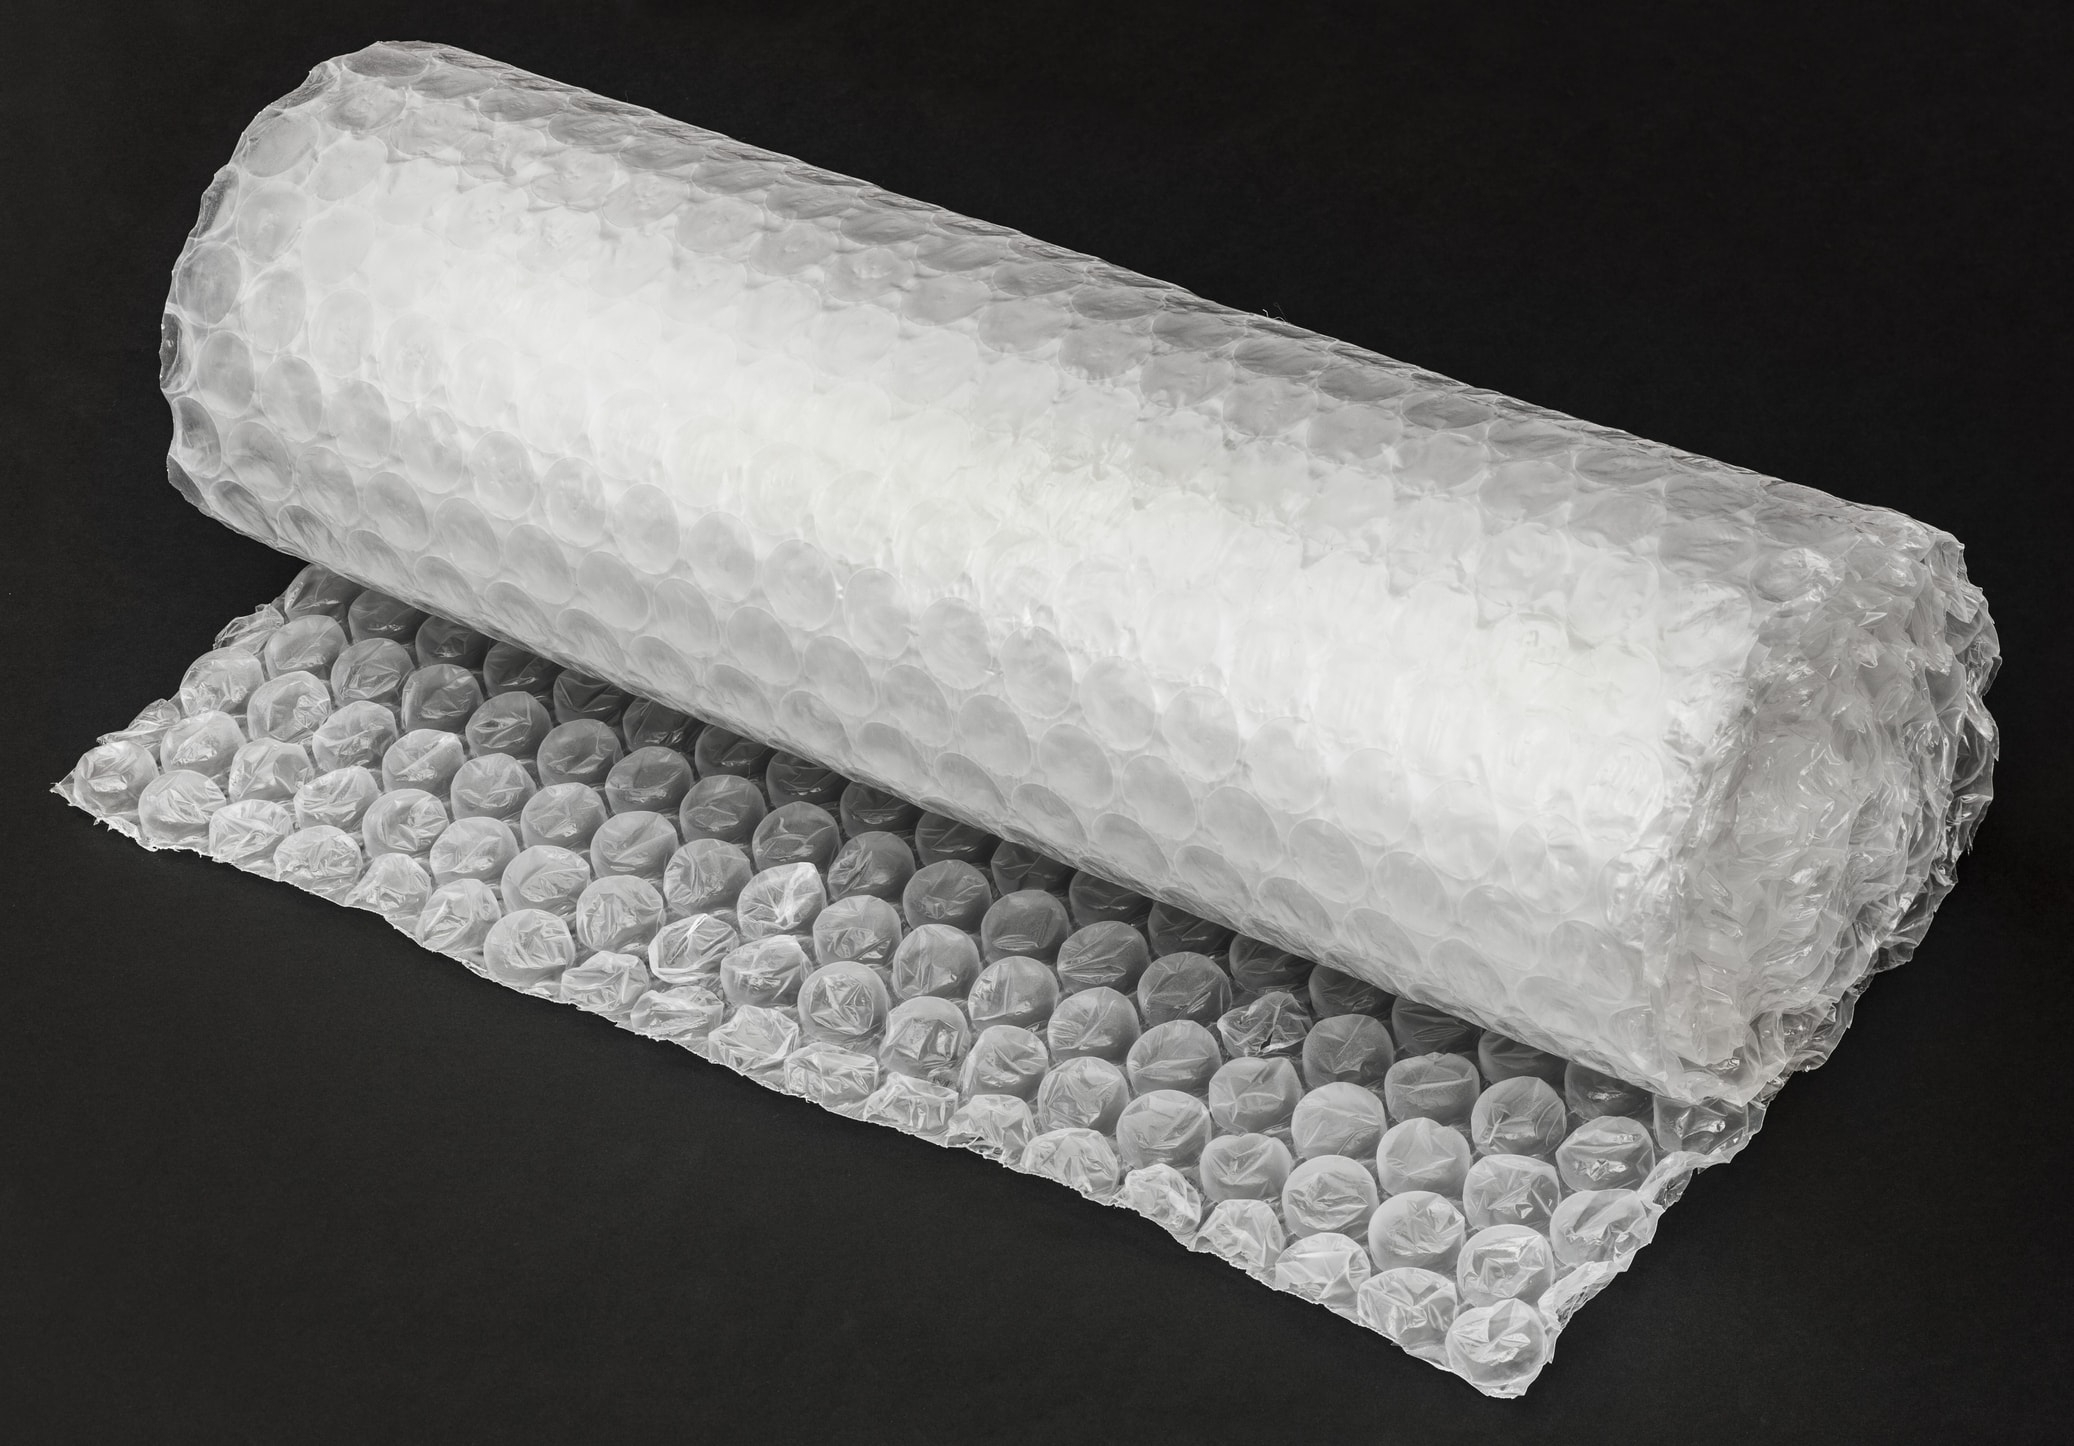 Bubble Wrap as a Recyclable Item